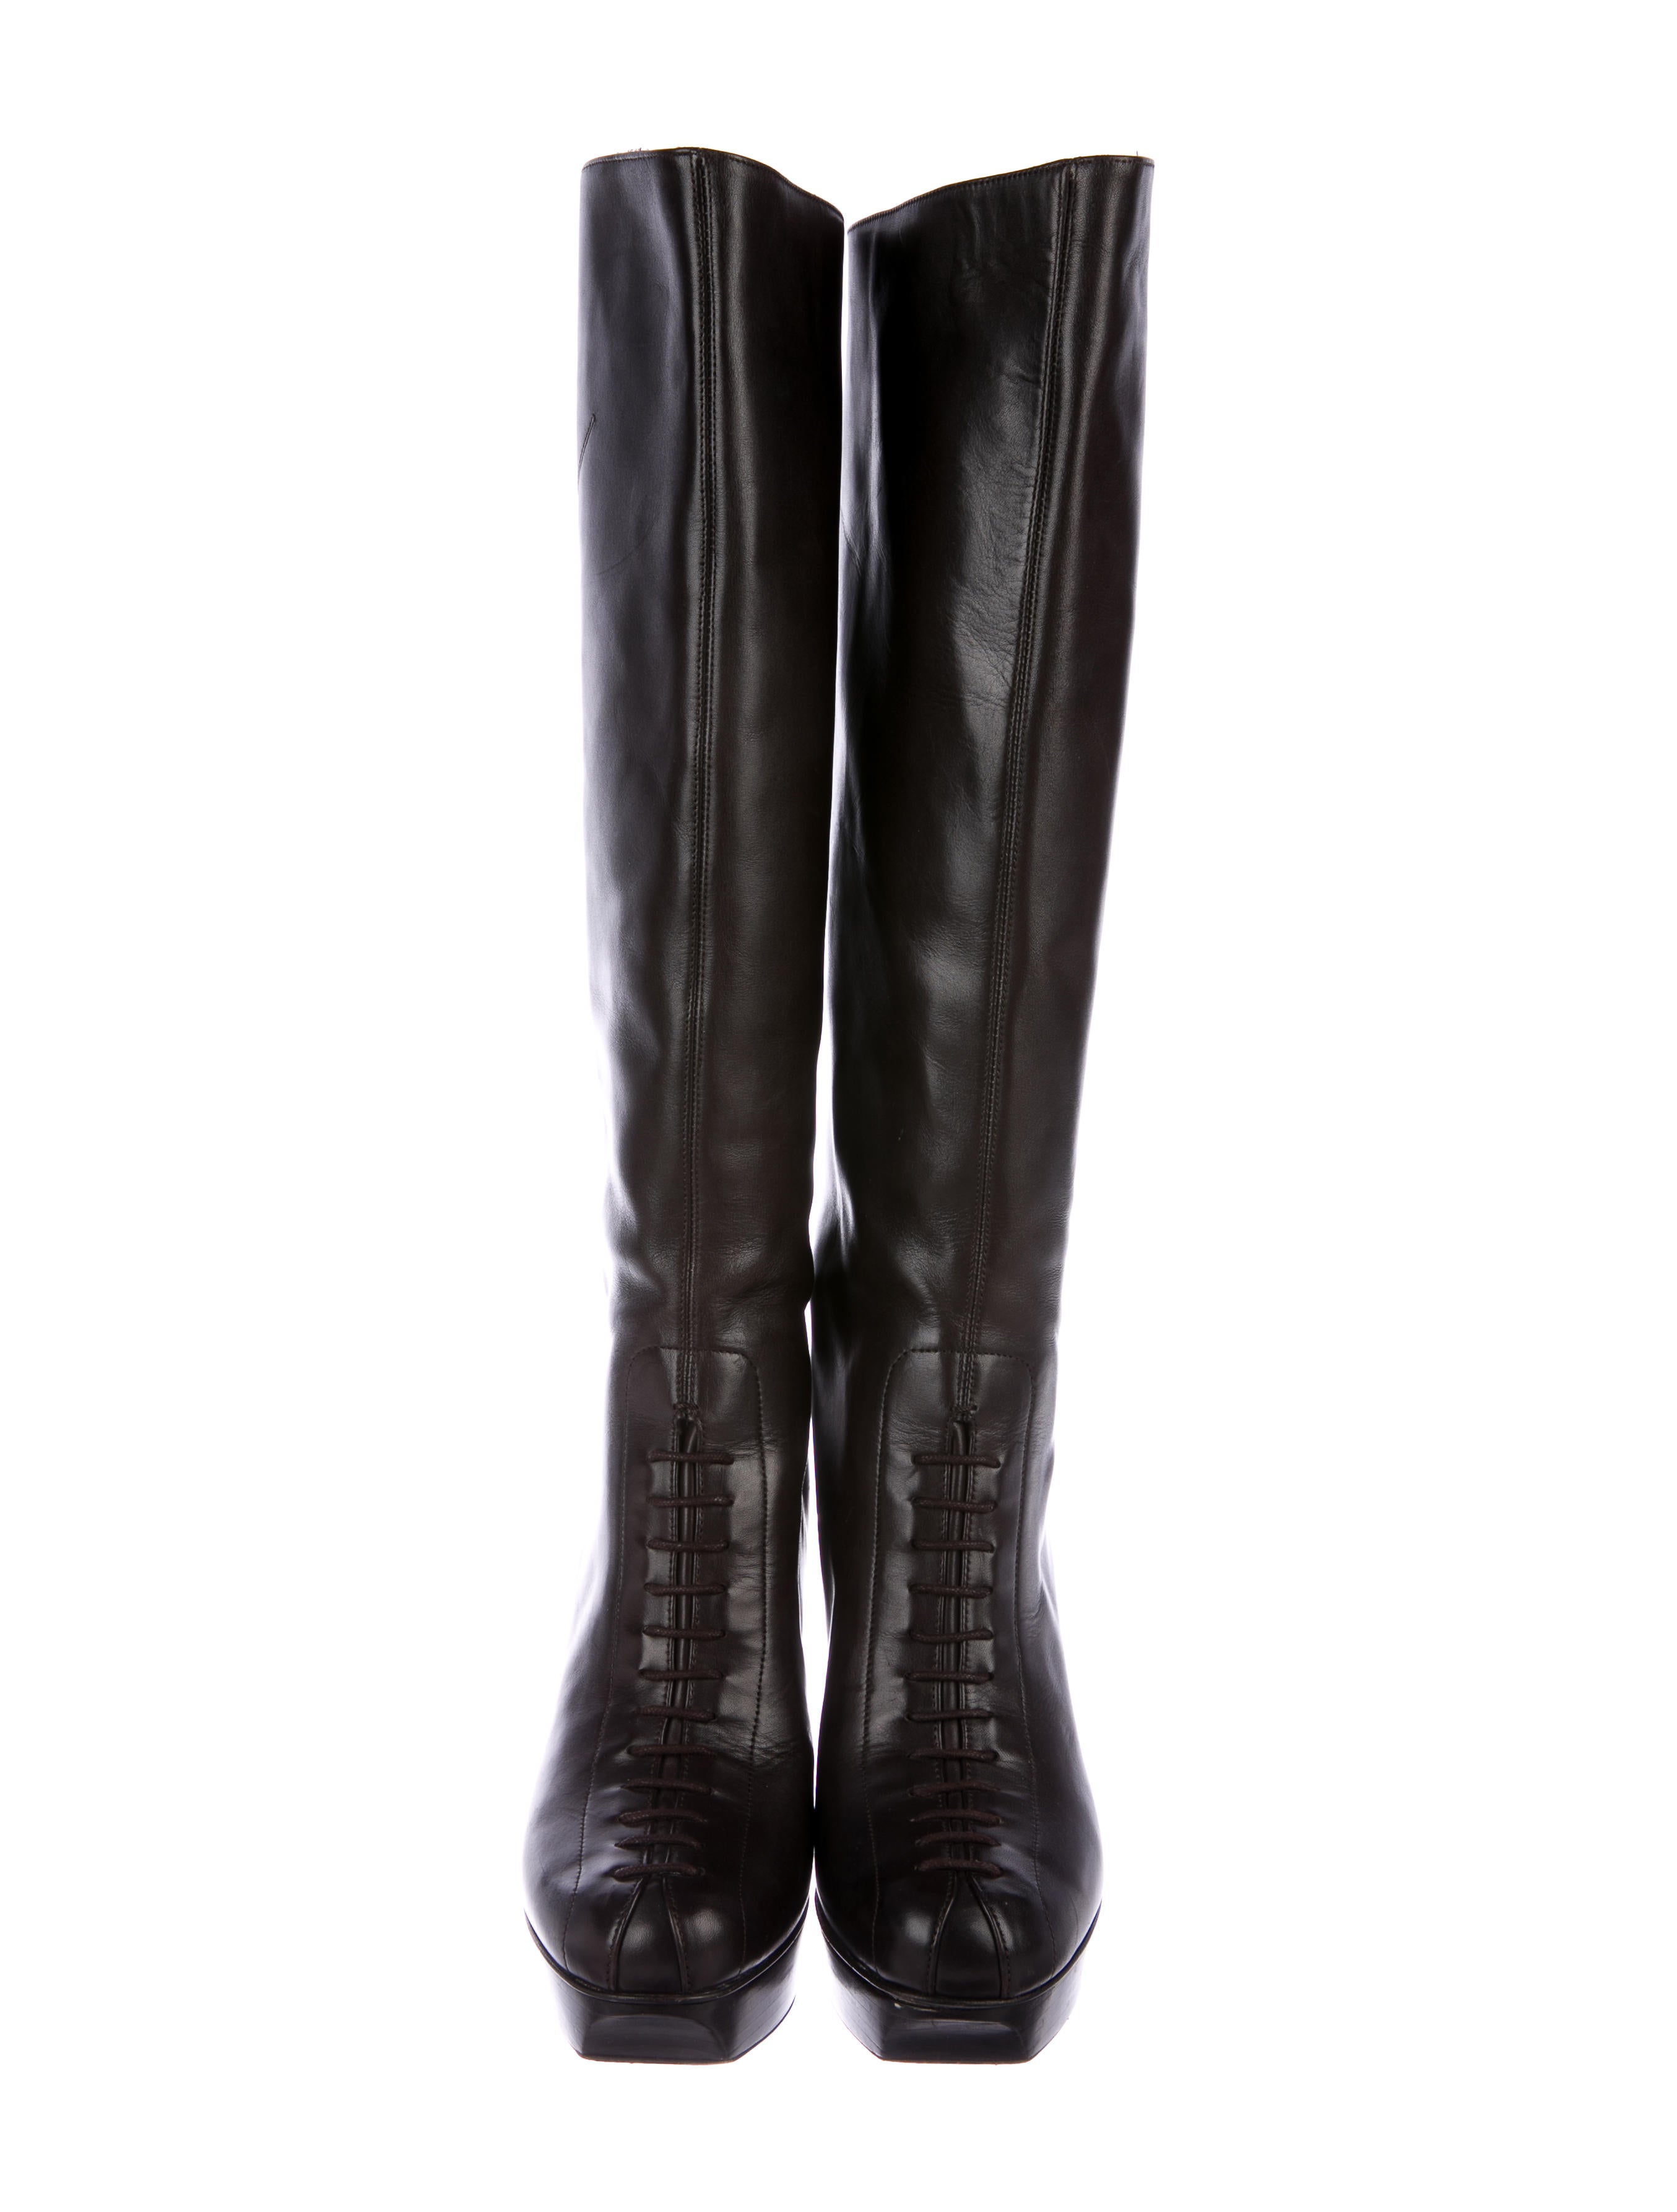 Yves Saint Laurent Lady Ascot Knee-High Boots buy cheap 100% guaranteed professional for sale iR5jYr